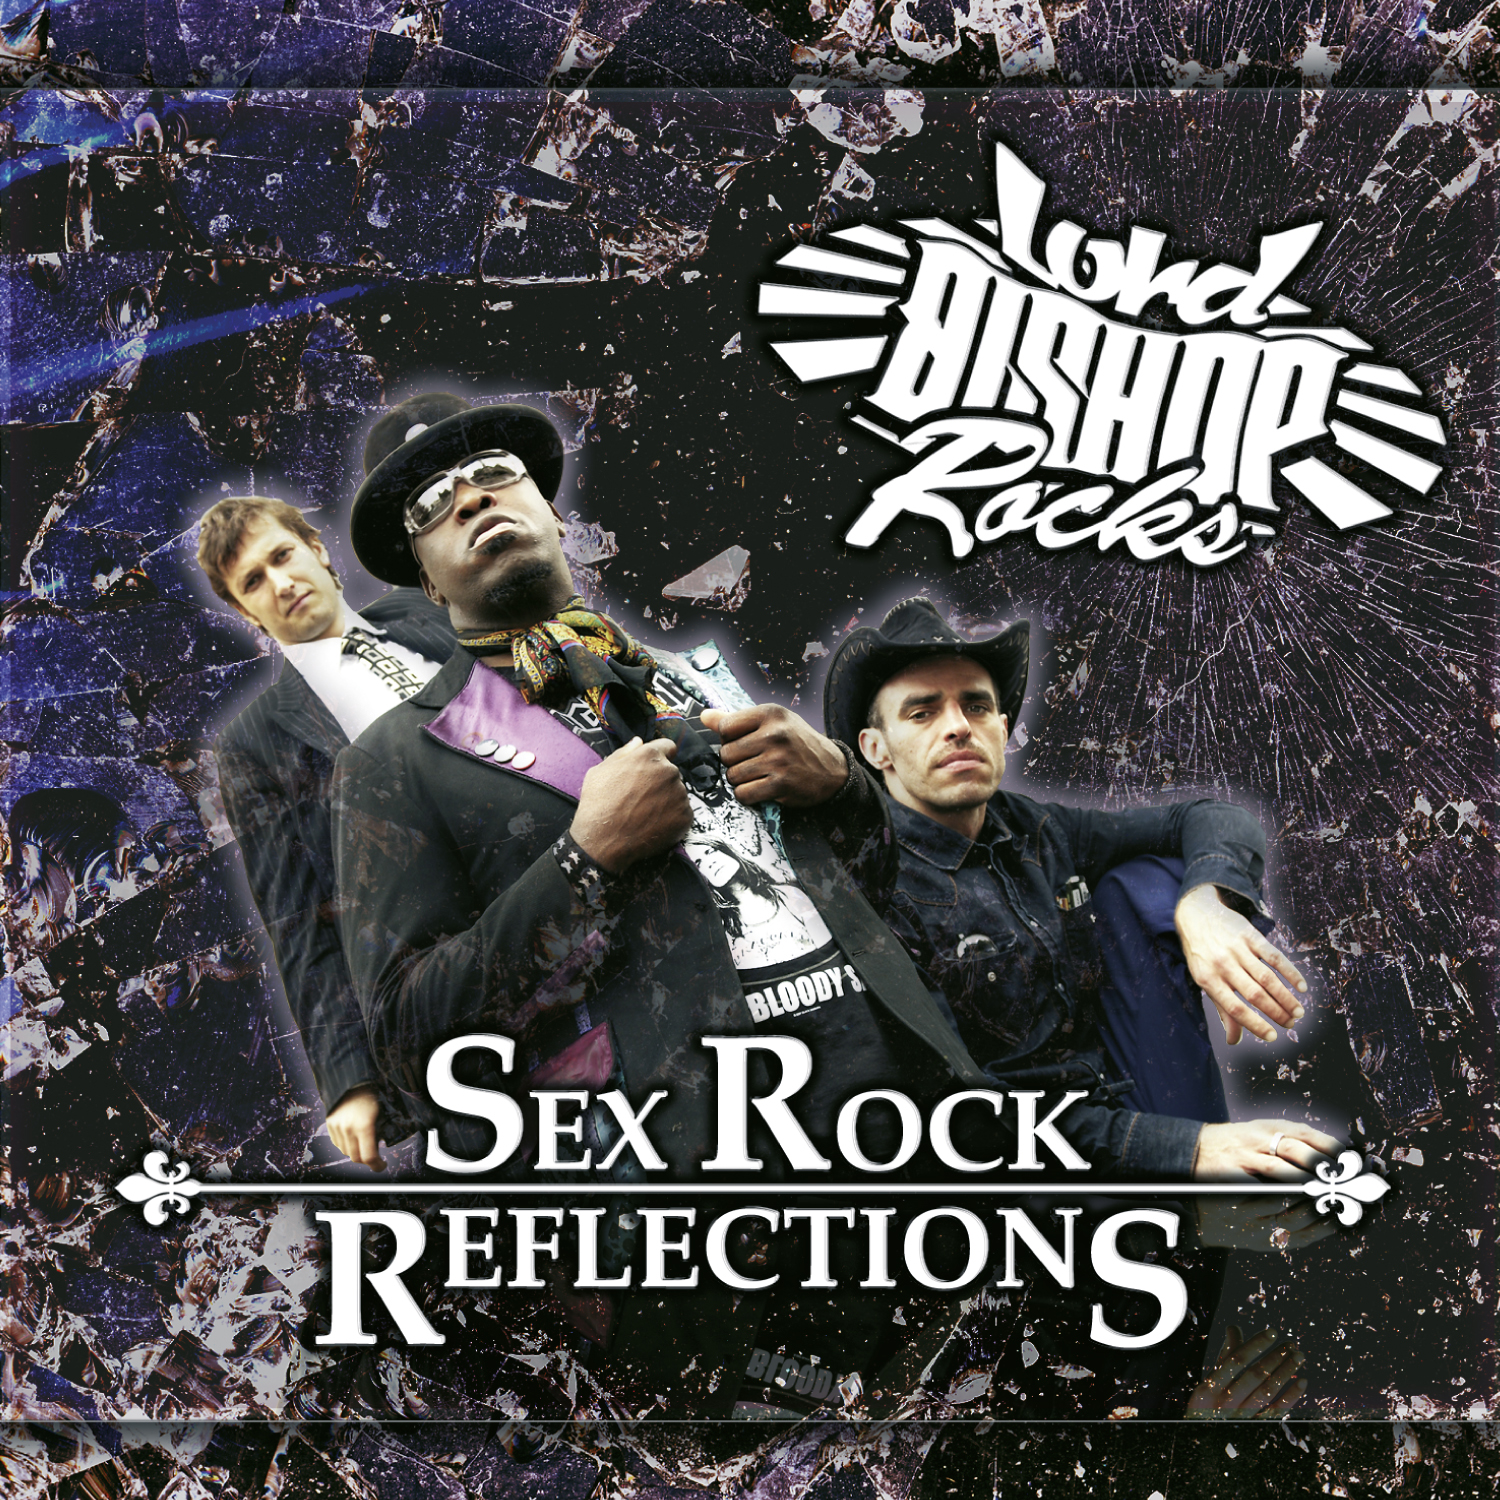 Sex Rock Reflections